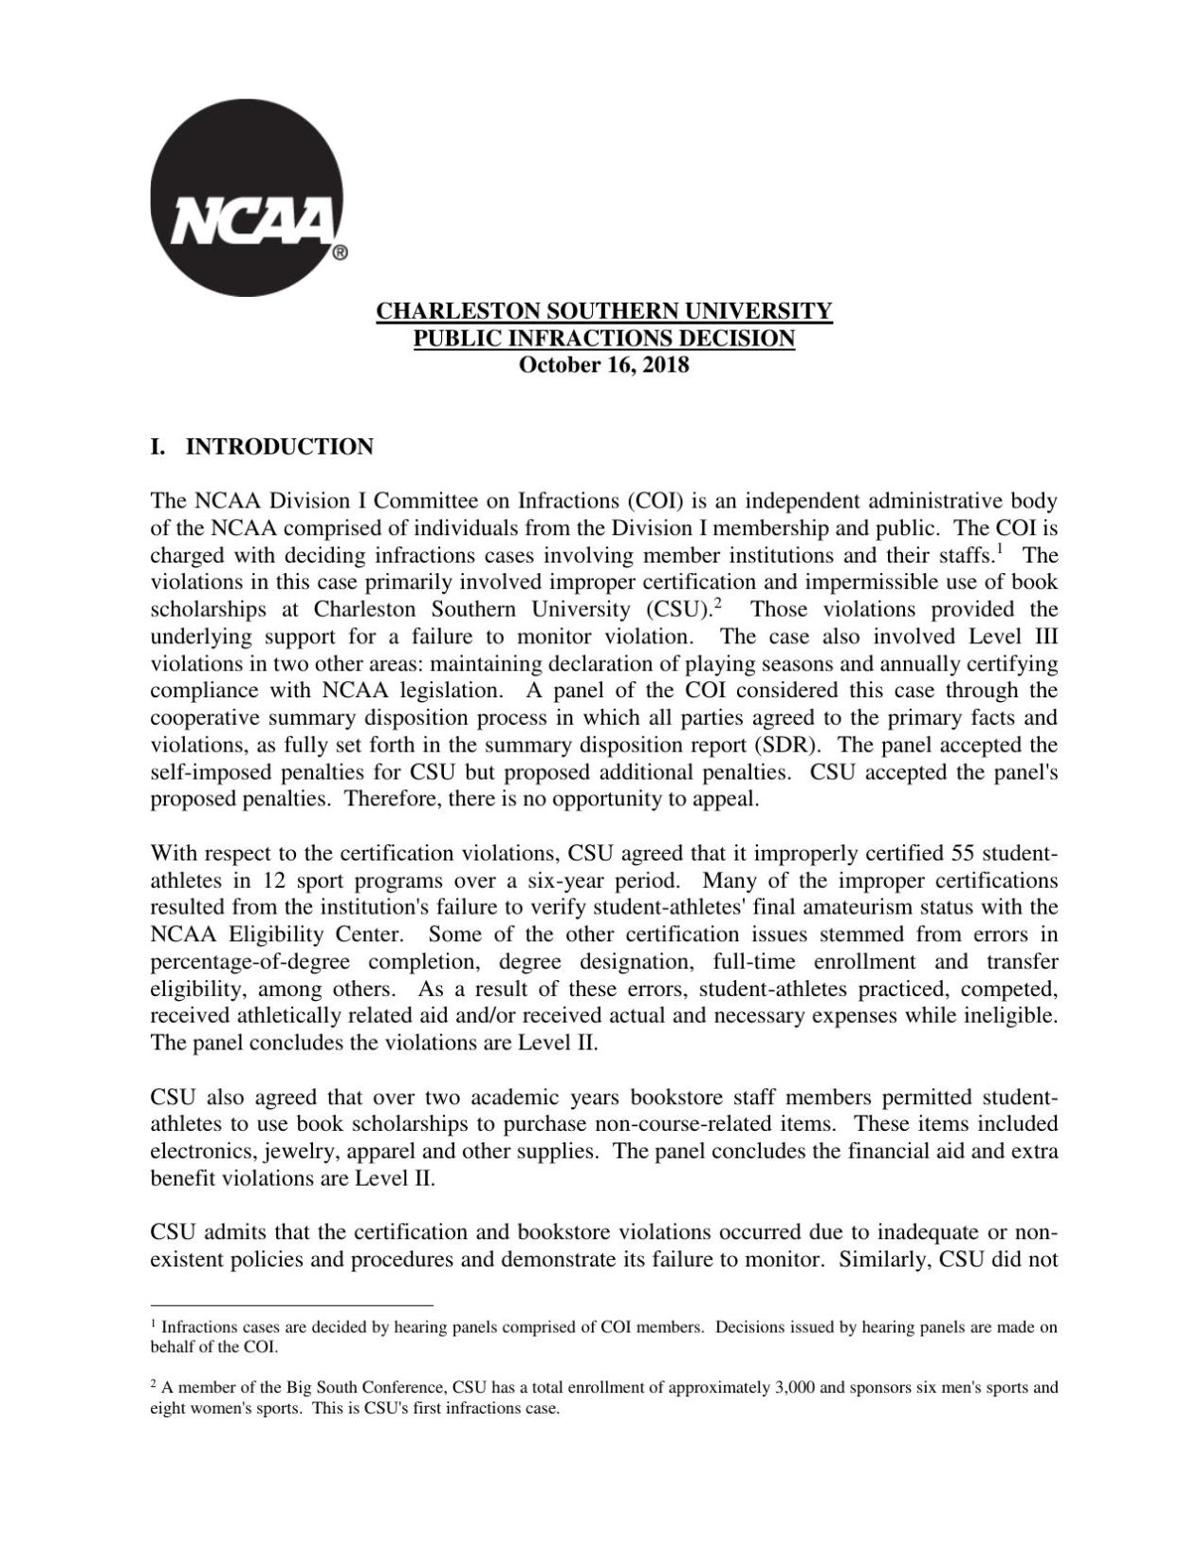 NCAA report on Charleston Southern